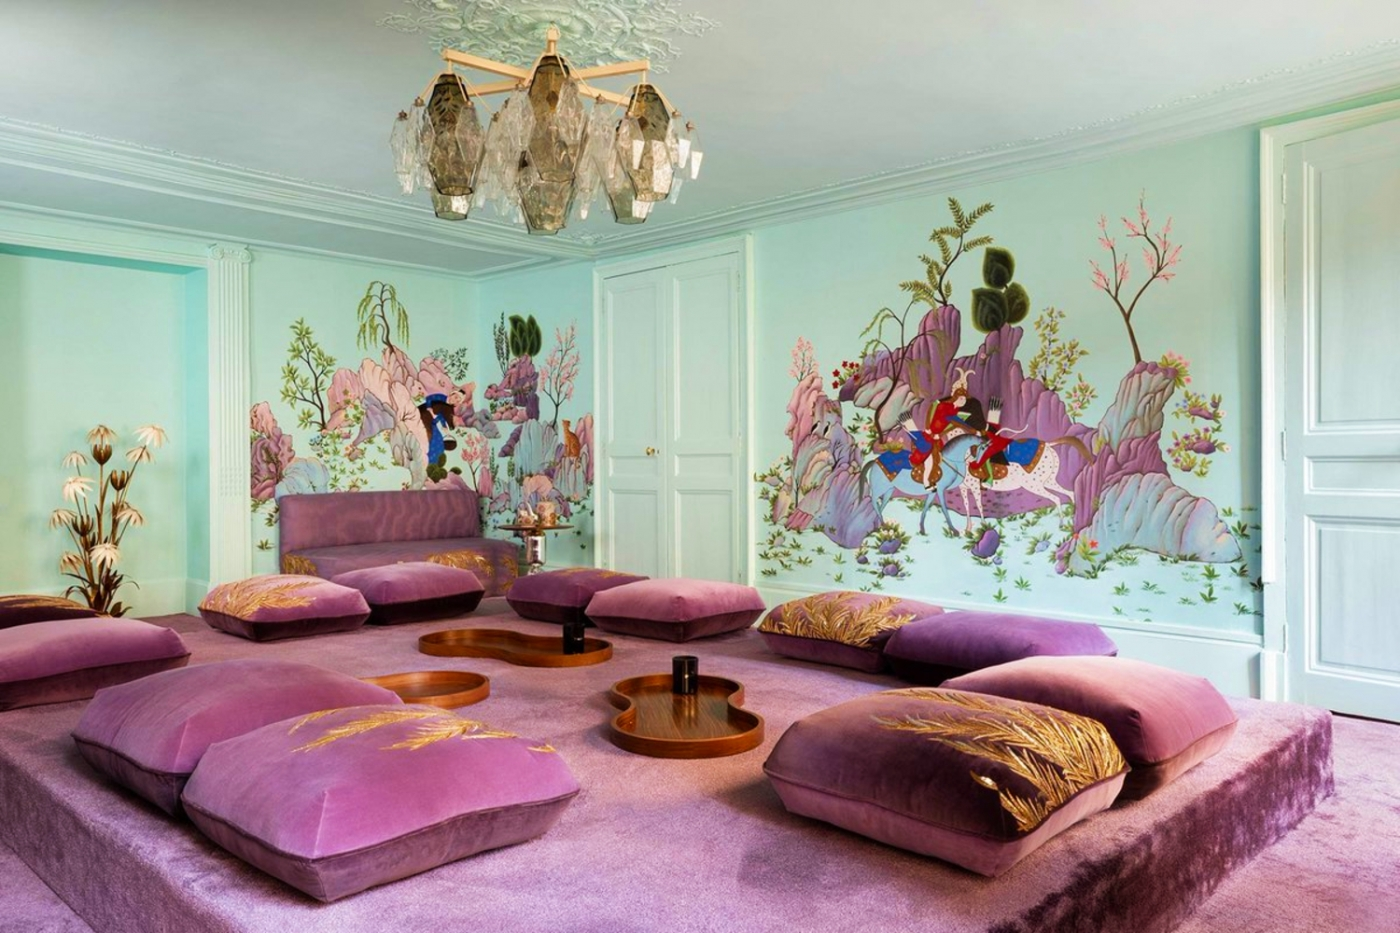 india mahdavi India Mahdavi and De Gournay's Collaboration Inspired By Persian Art feature image 2020 10 23T155319